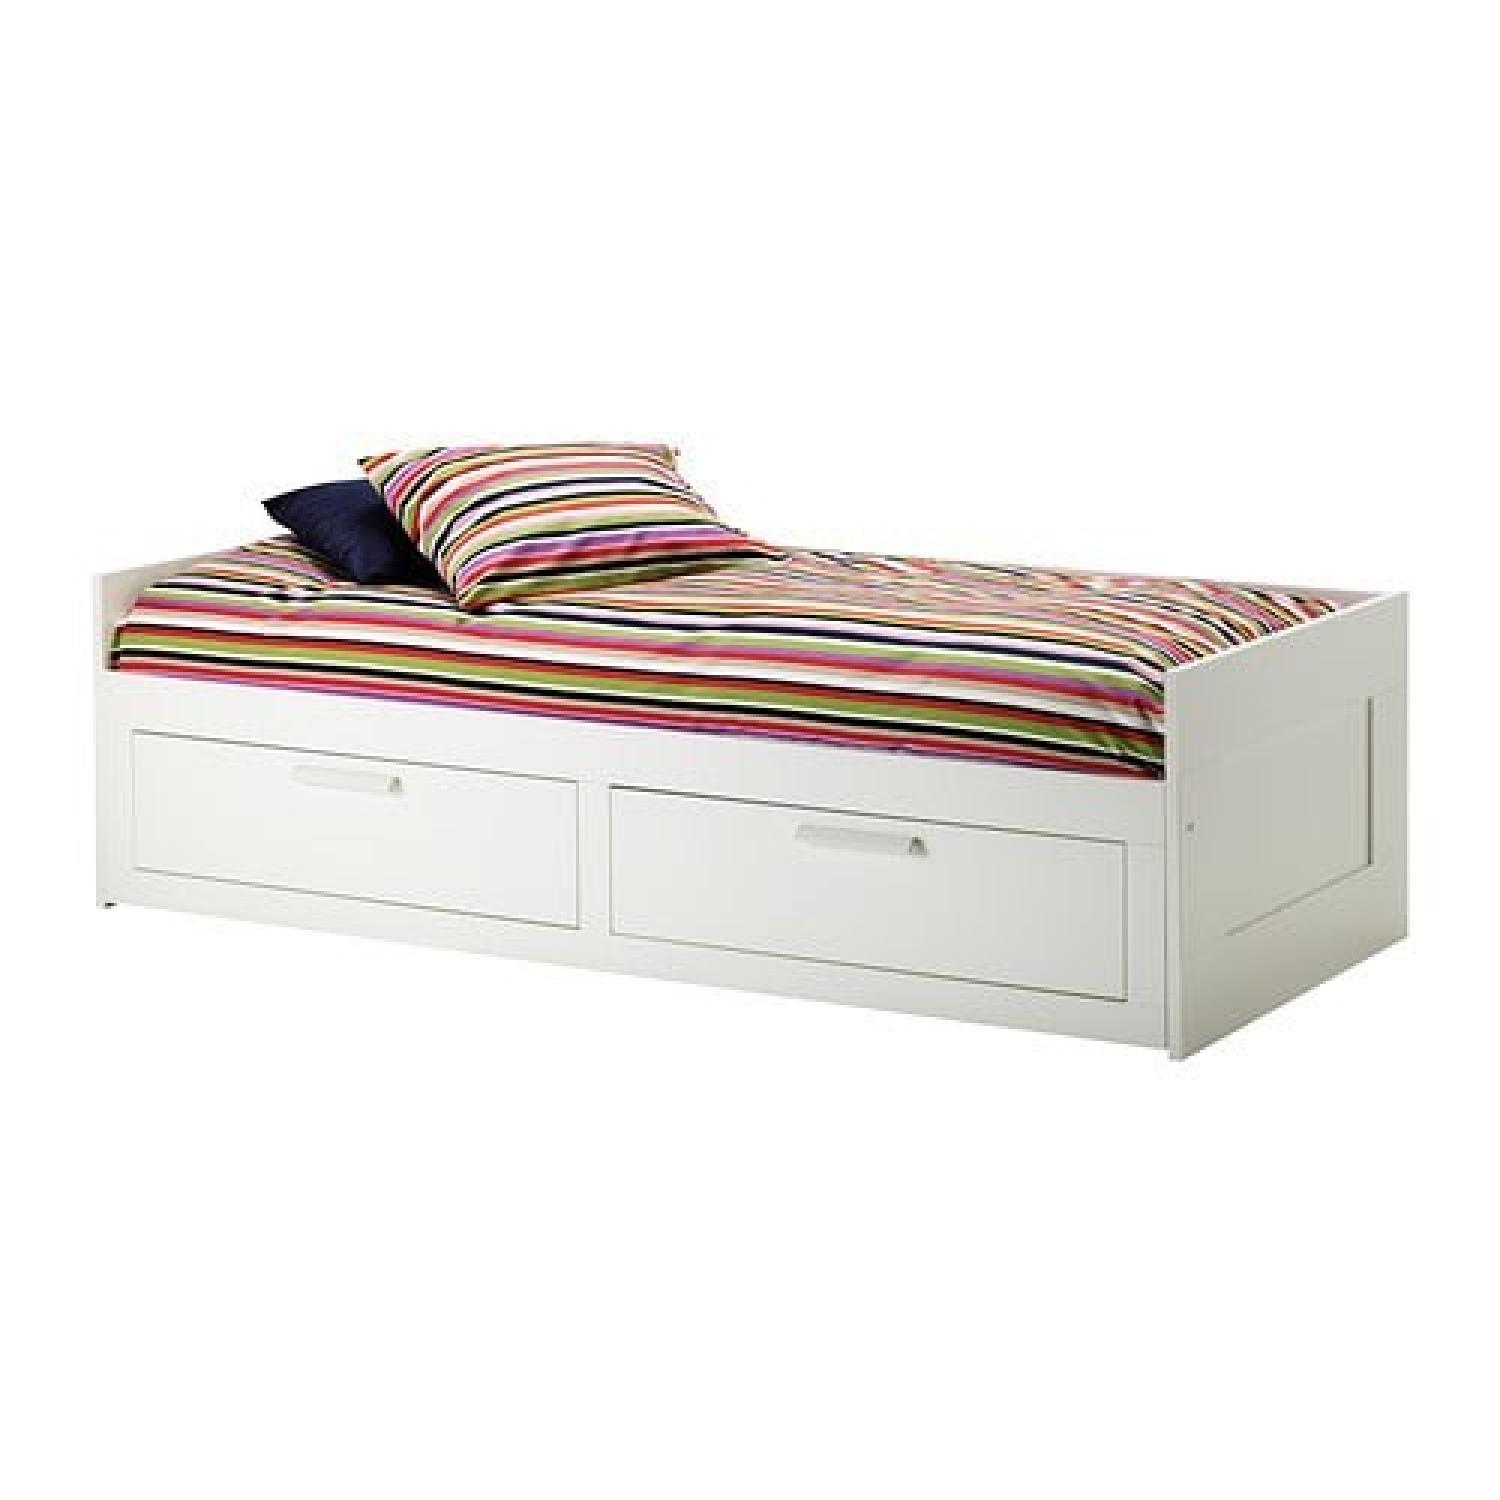 Ikea Twin Bed Frame w/ 2 Drawer